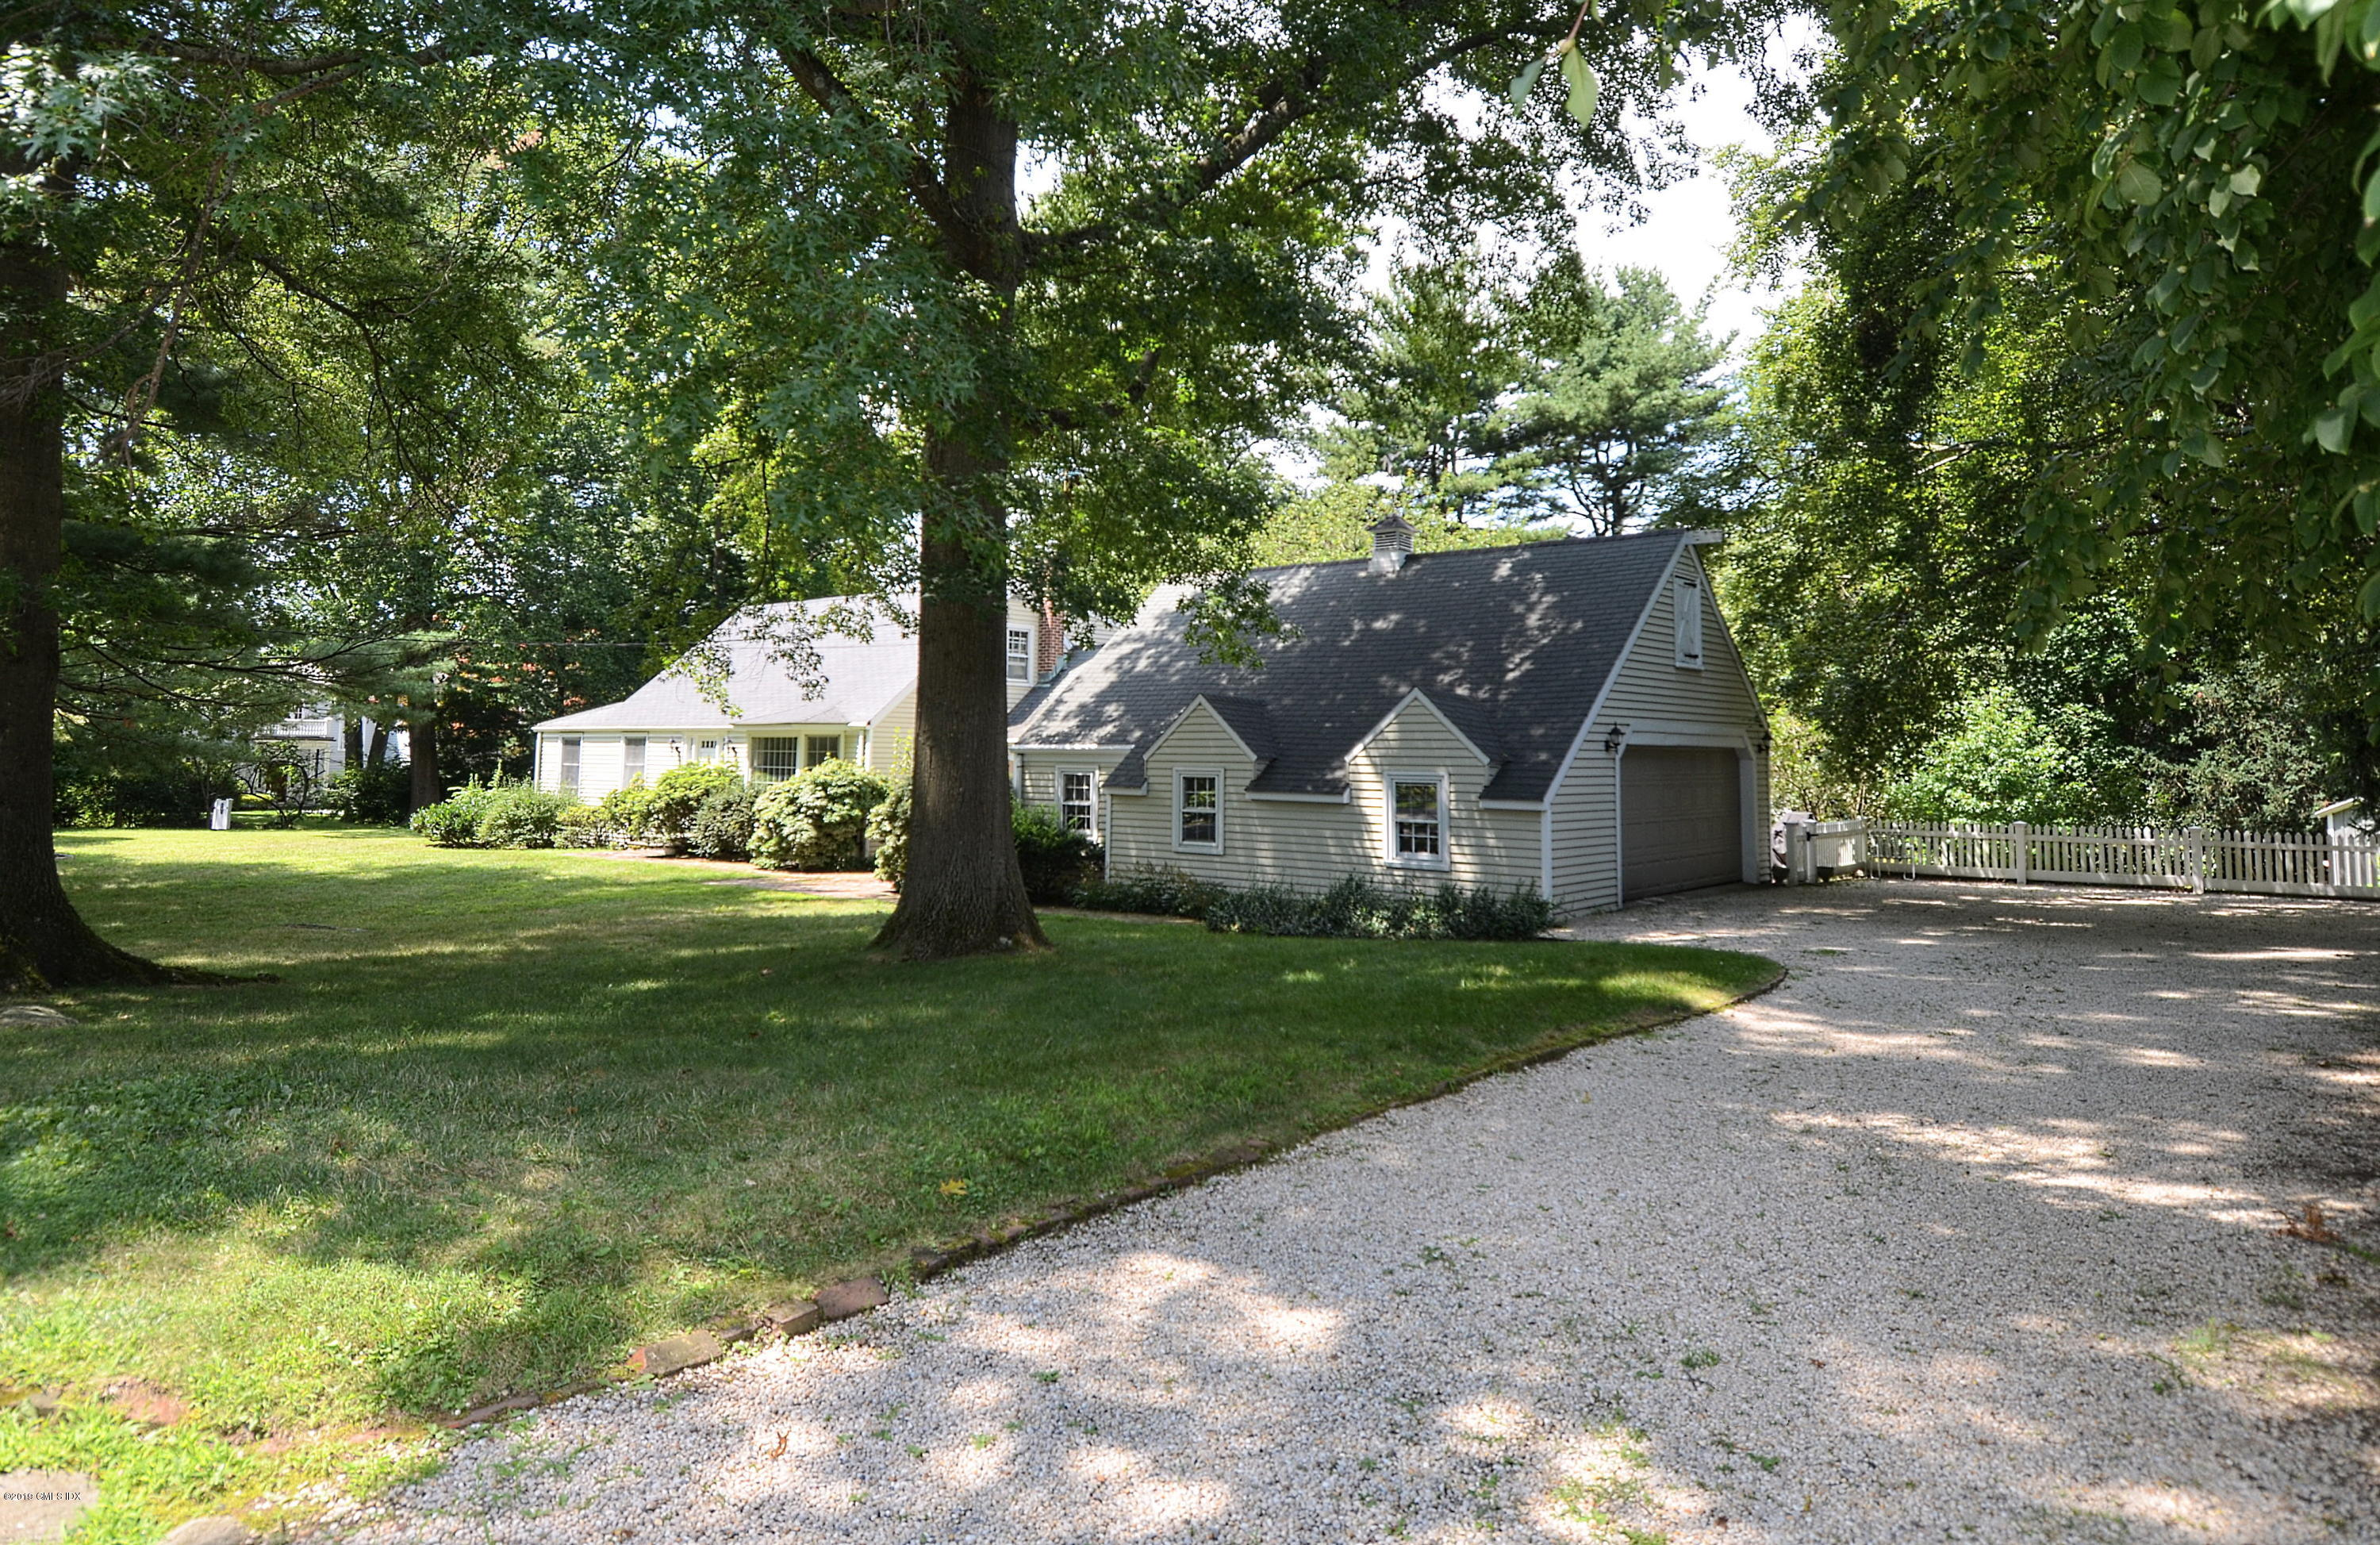 18 Armstrong Lane,Riverside,Connecticut 06878,3 Bedrooms Bedrooms,2 BathroomsBathrooms,Armstrong,108330